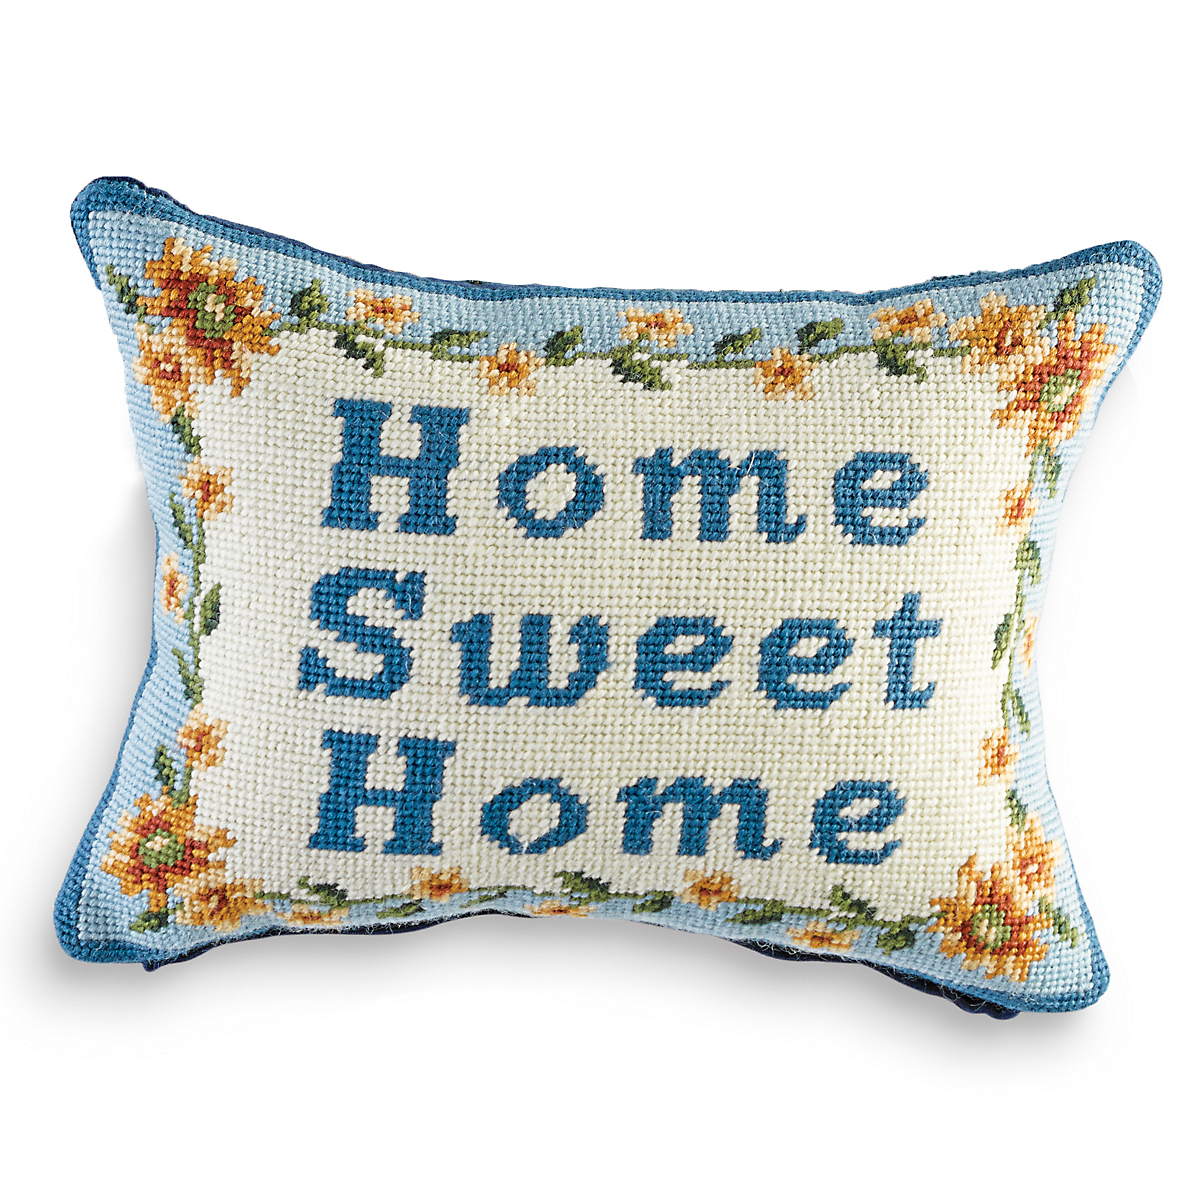 Home Sweet Home Needlepoint Pillow